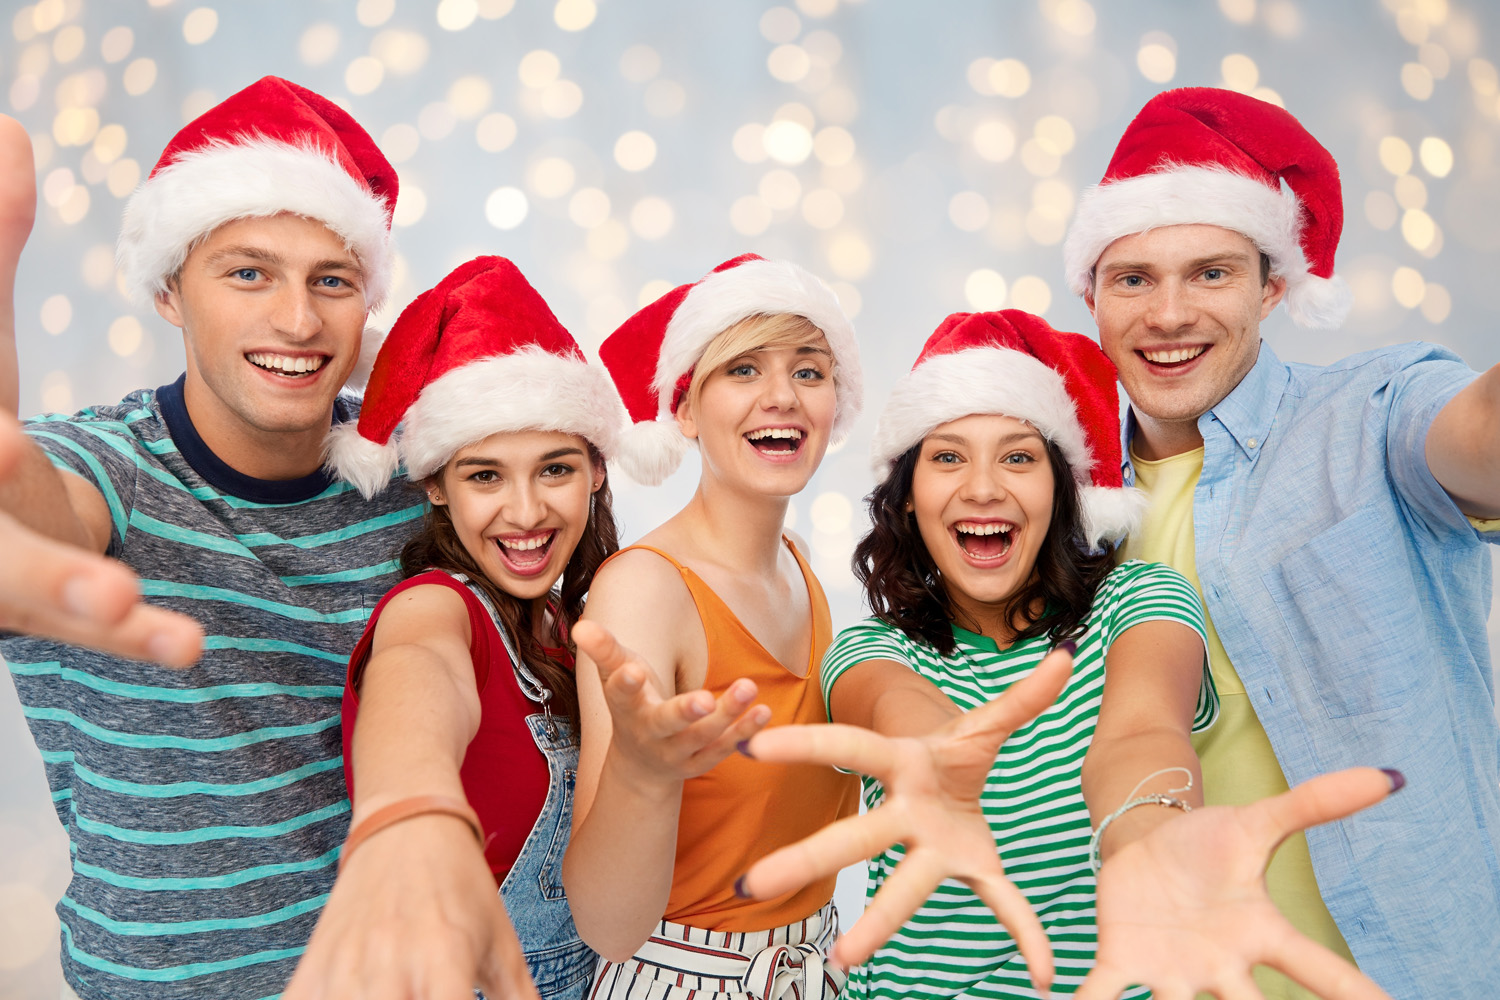 Teen Christmas Party Ideas That Aren't